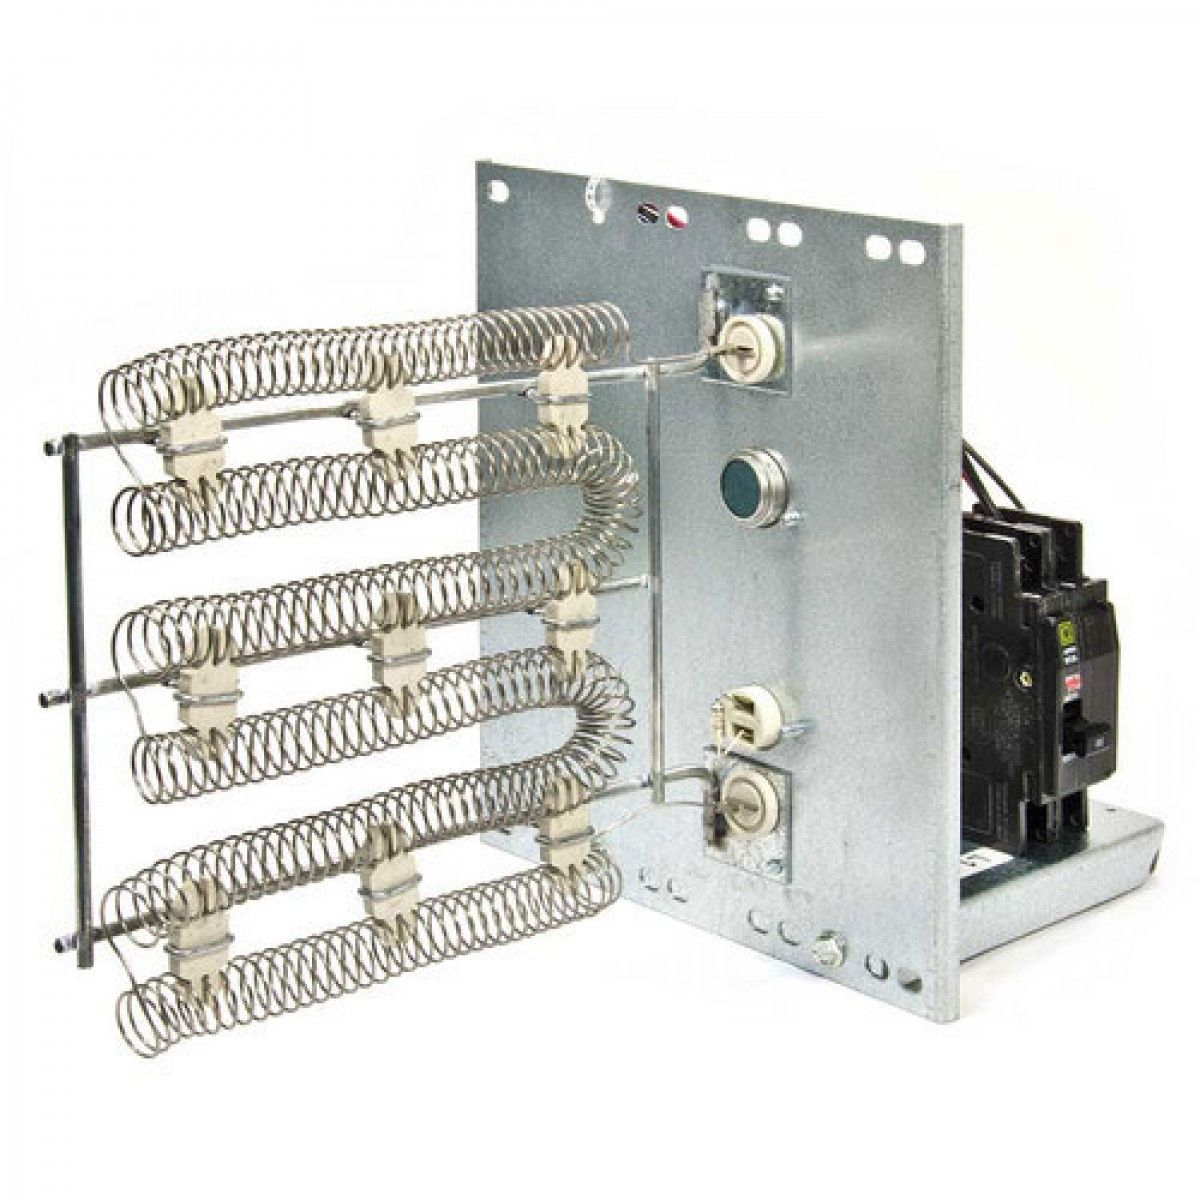 20 Kw Goodman Hkp 20 Electric Heat Kits For Packaged